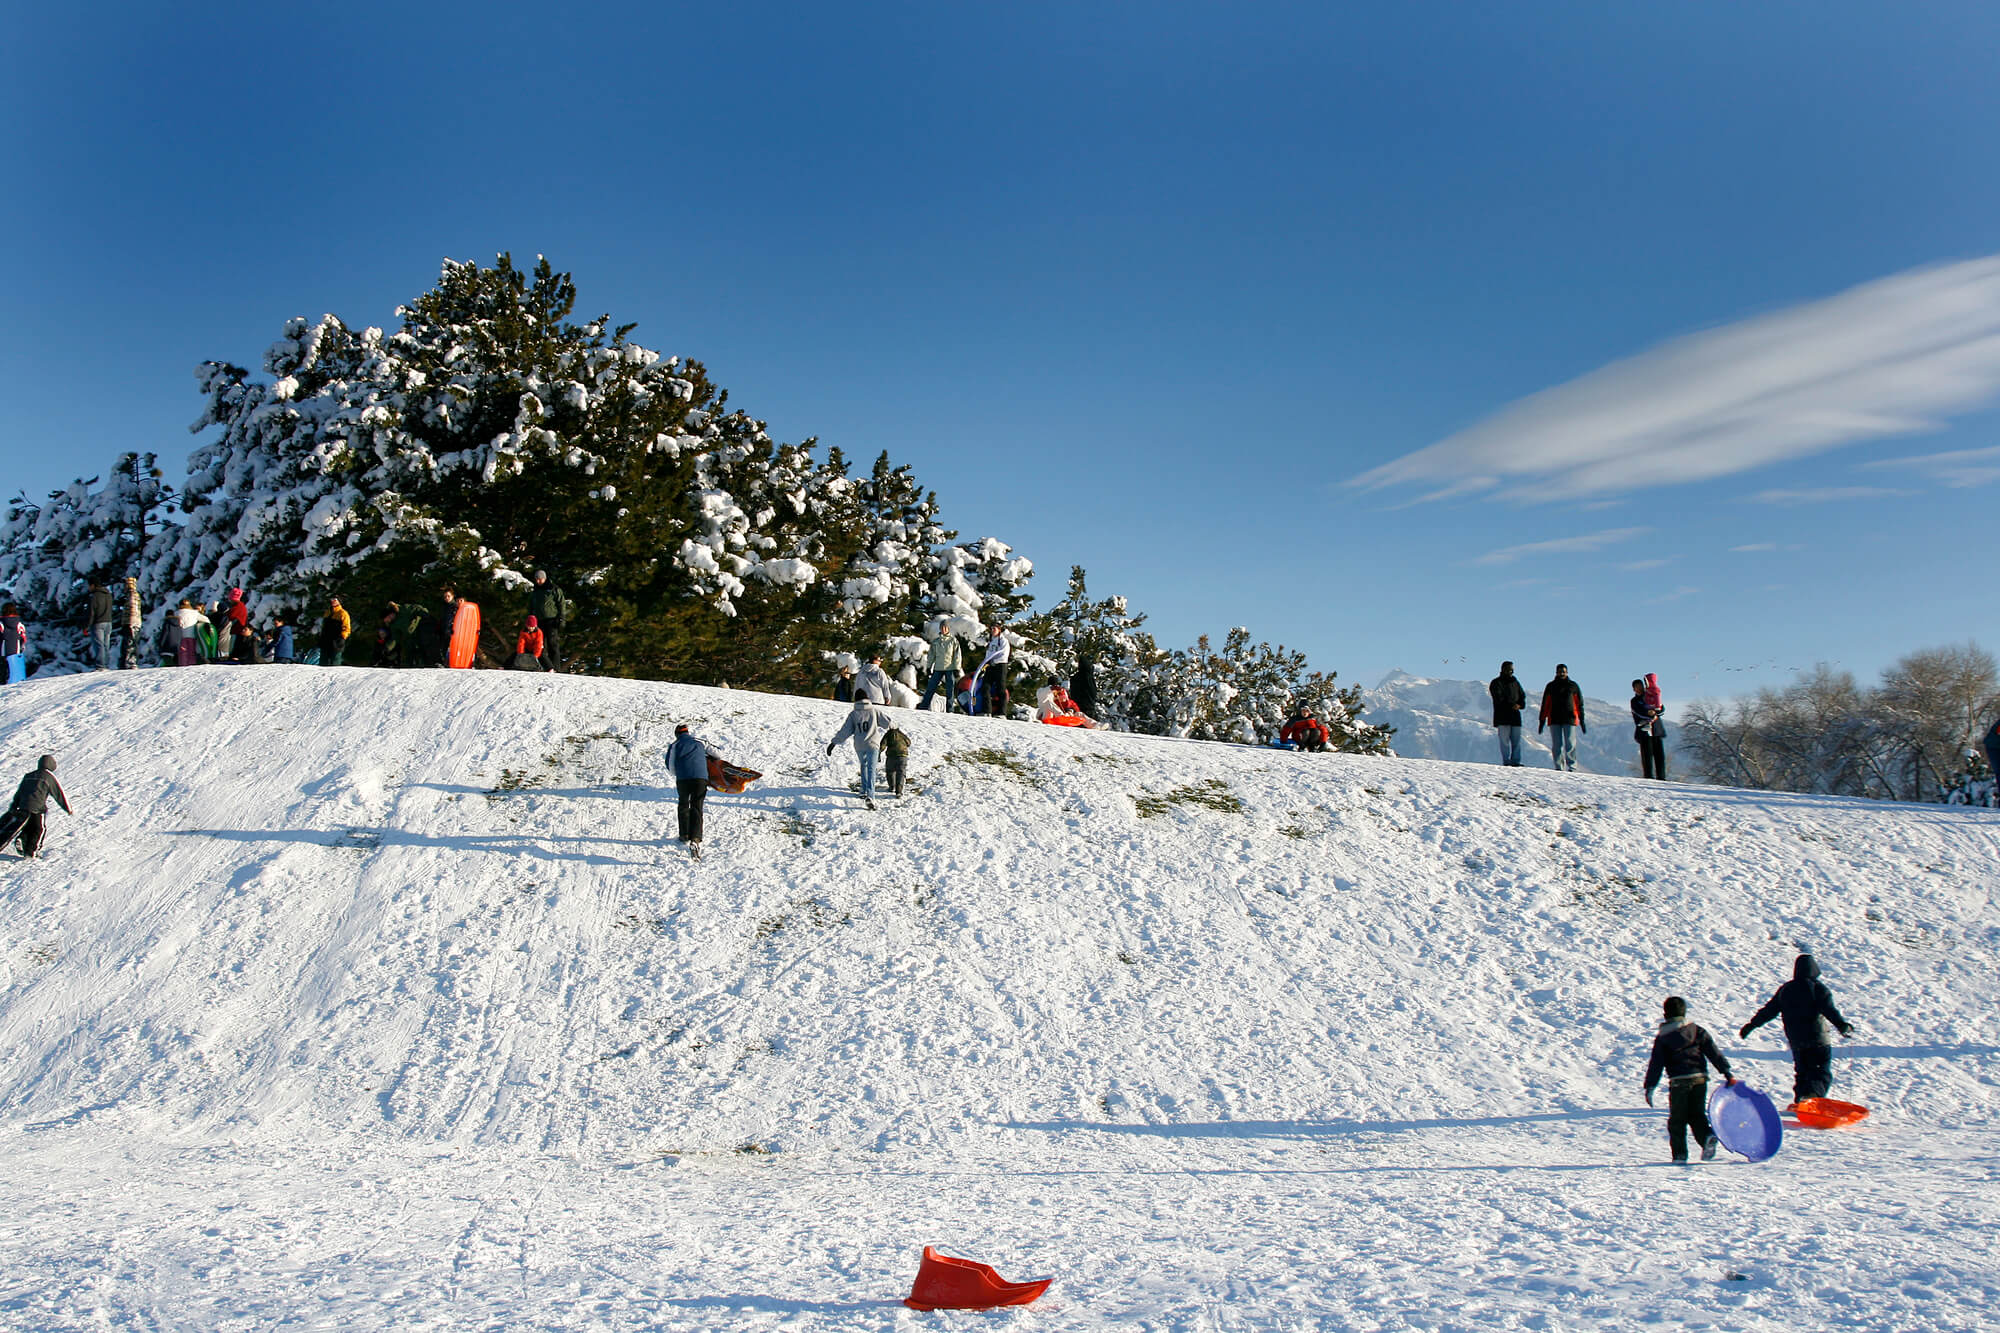 People Sledding down the Hill - Winter Scenes